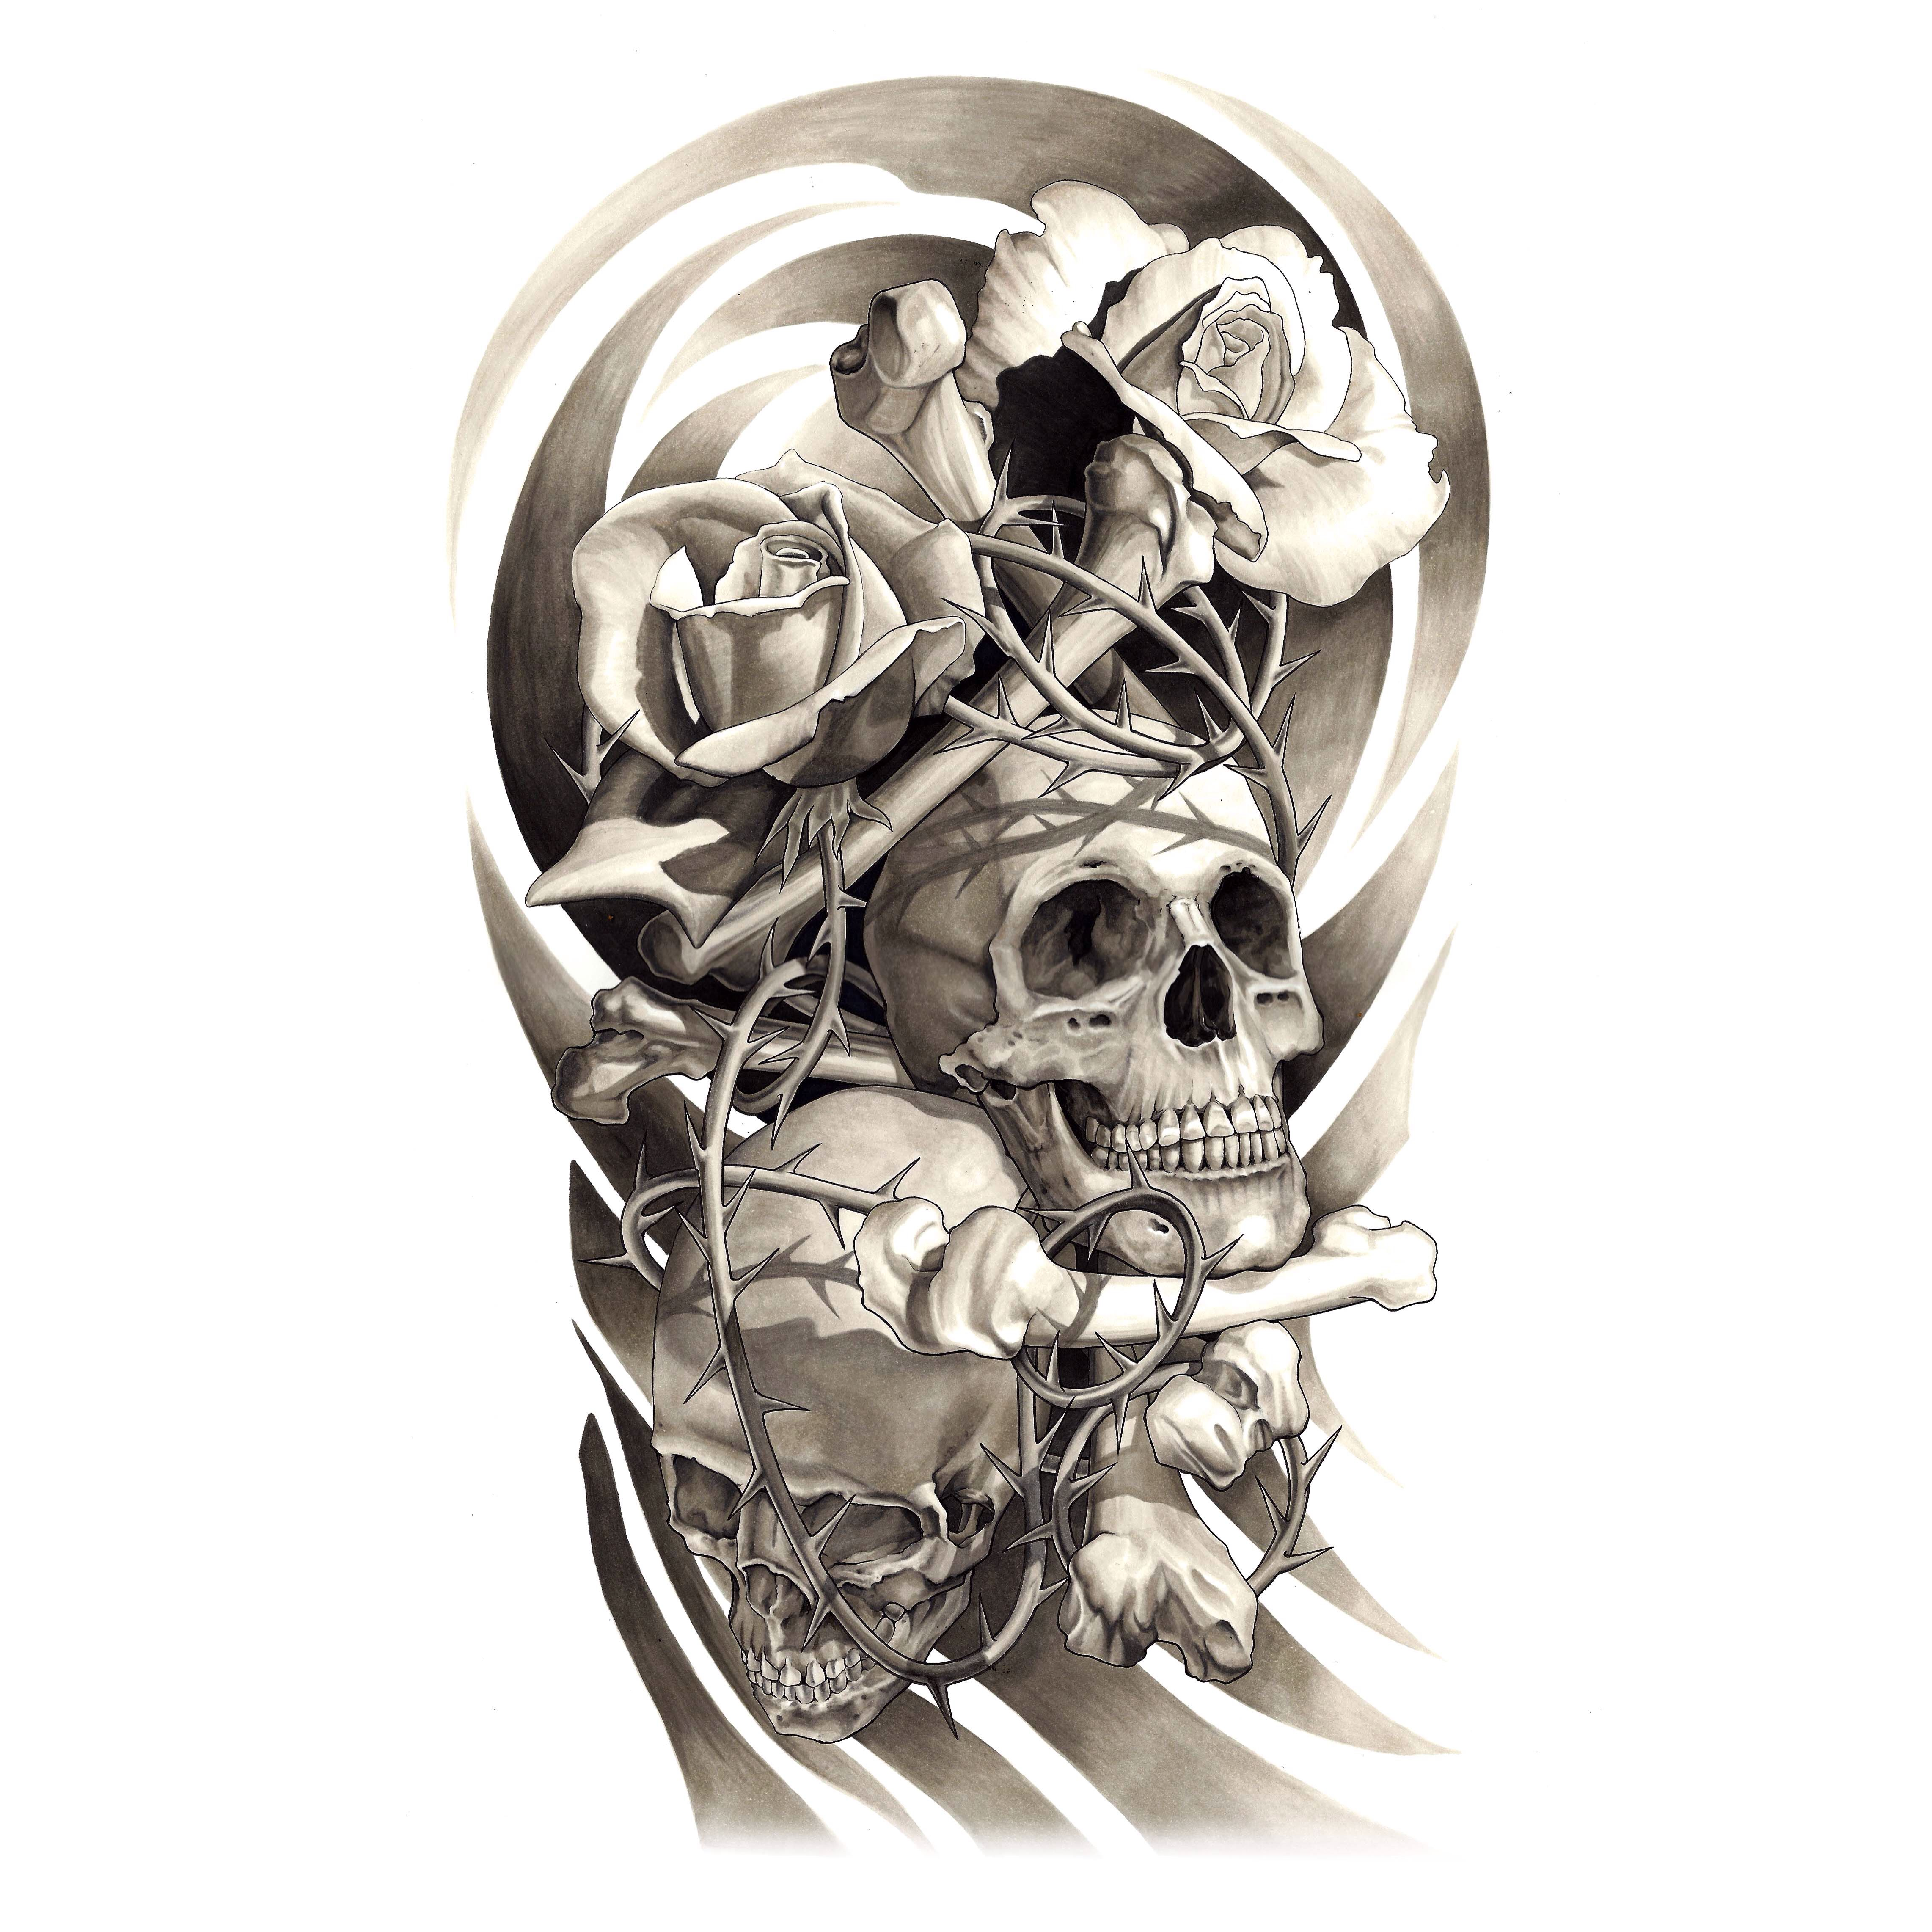 Skulls Tattoo Design Wallpaper: Pin By Mirza Ribic On Tattoo Ideas